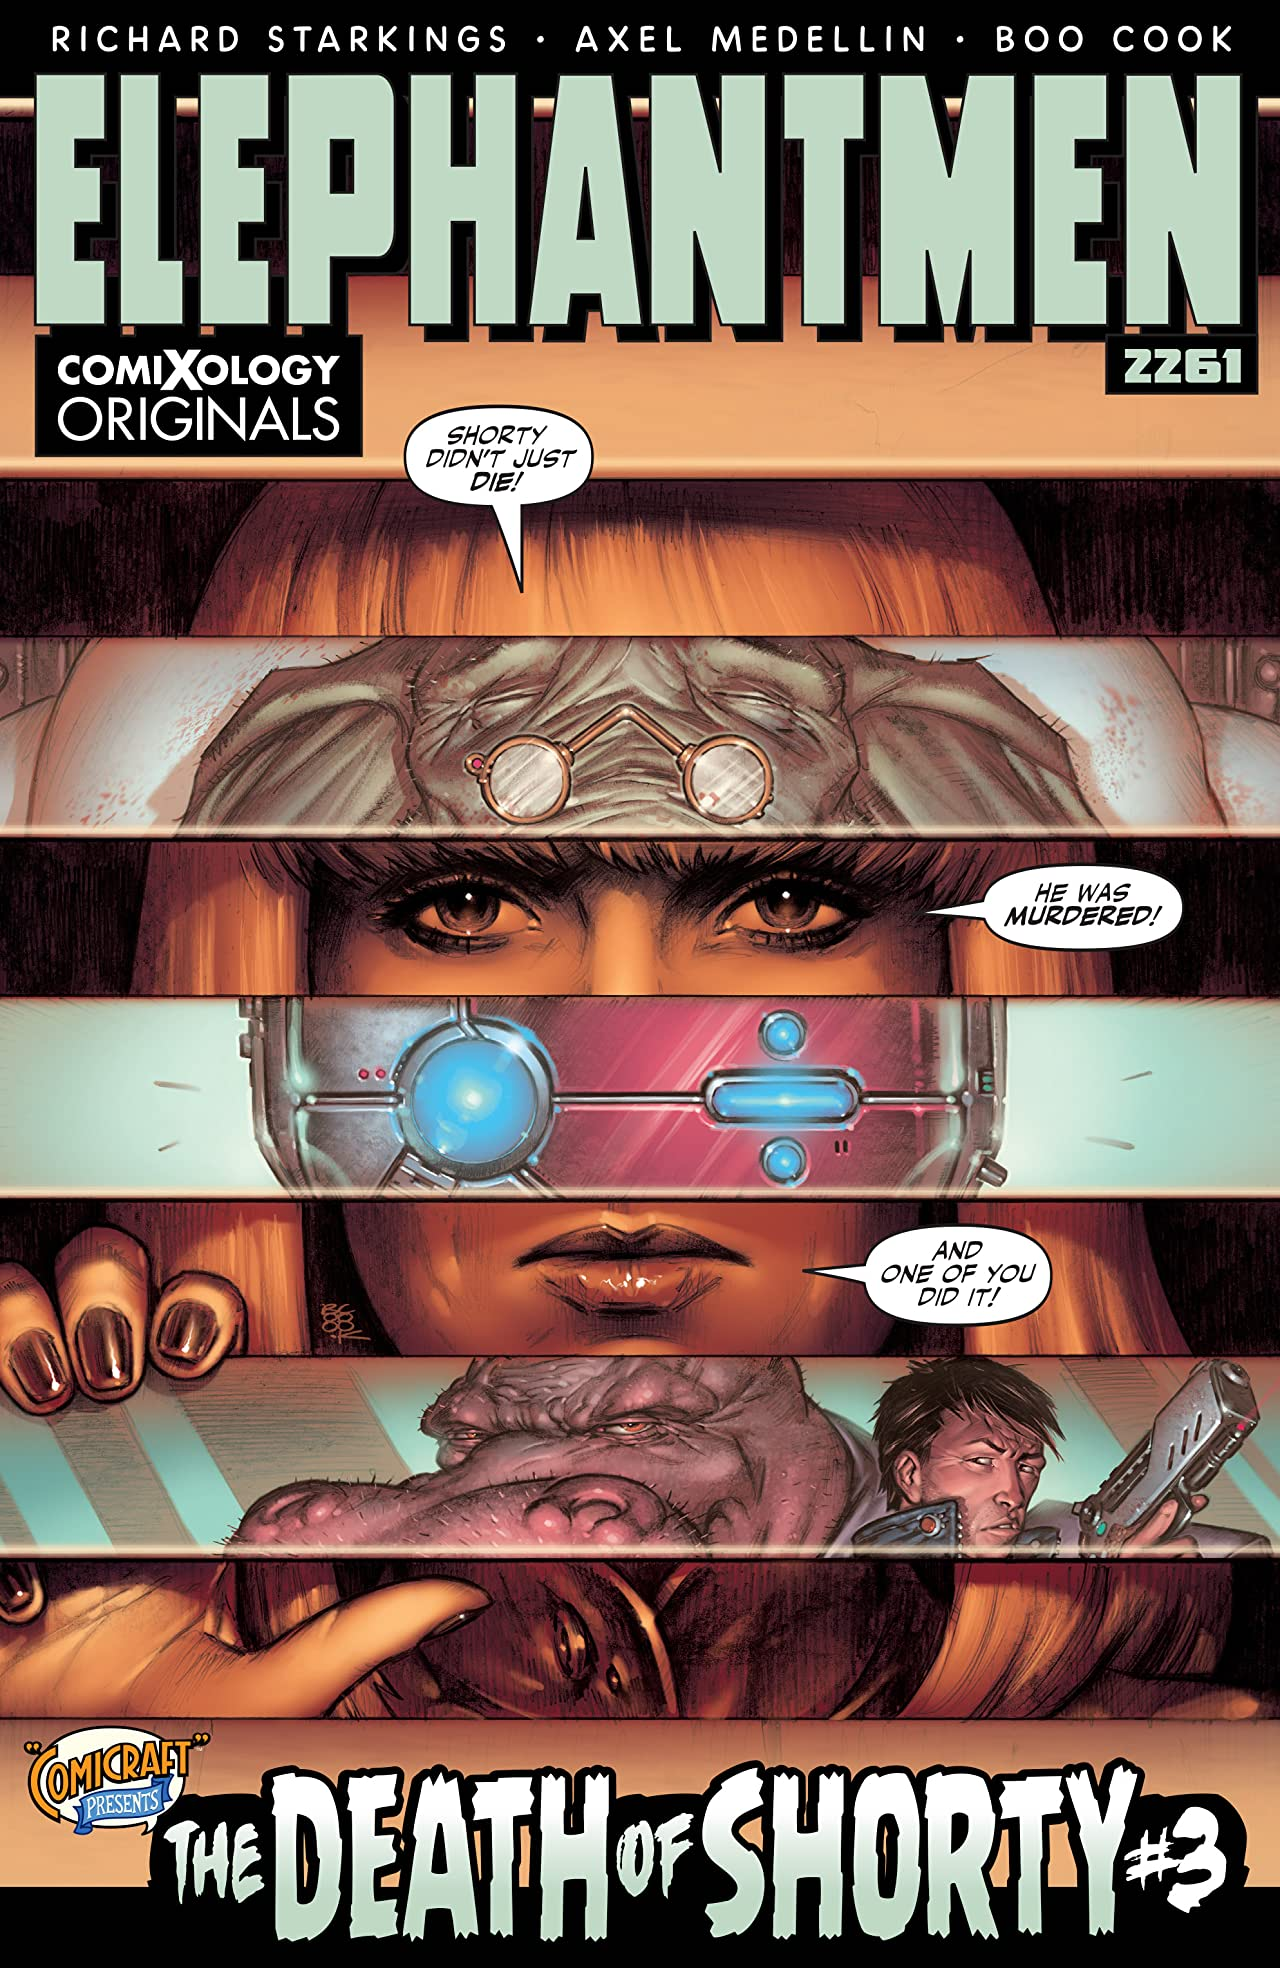 Elephantmen 2261: The Death of Shorty (comiXology Originals) #3 (of 5)